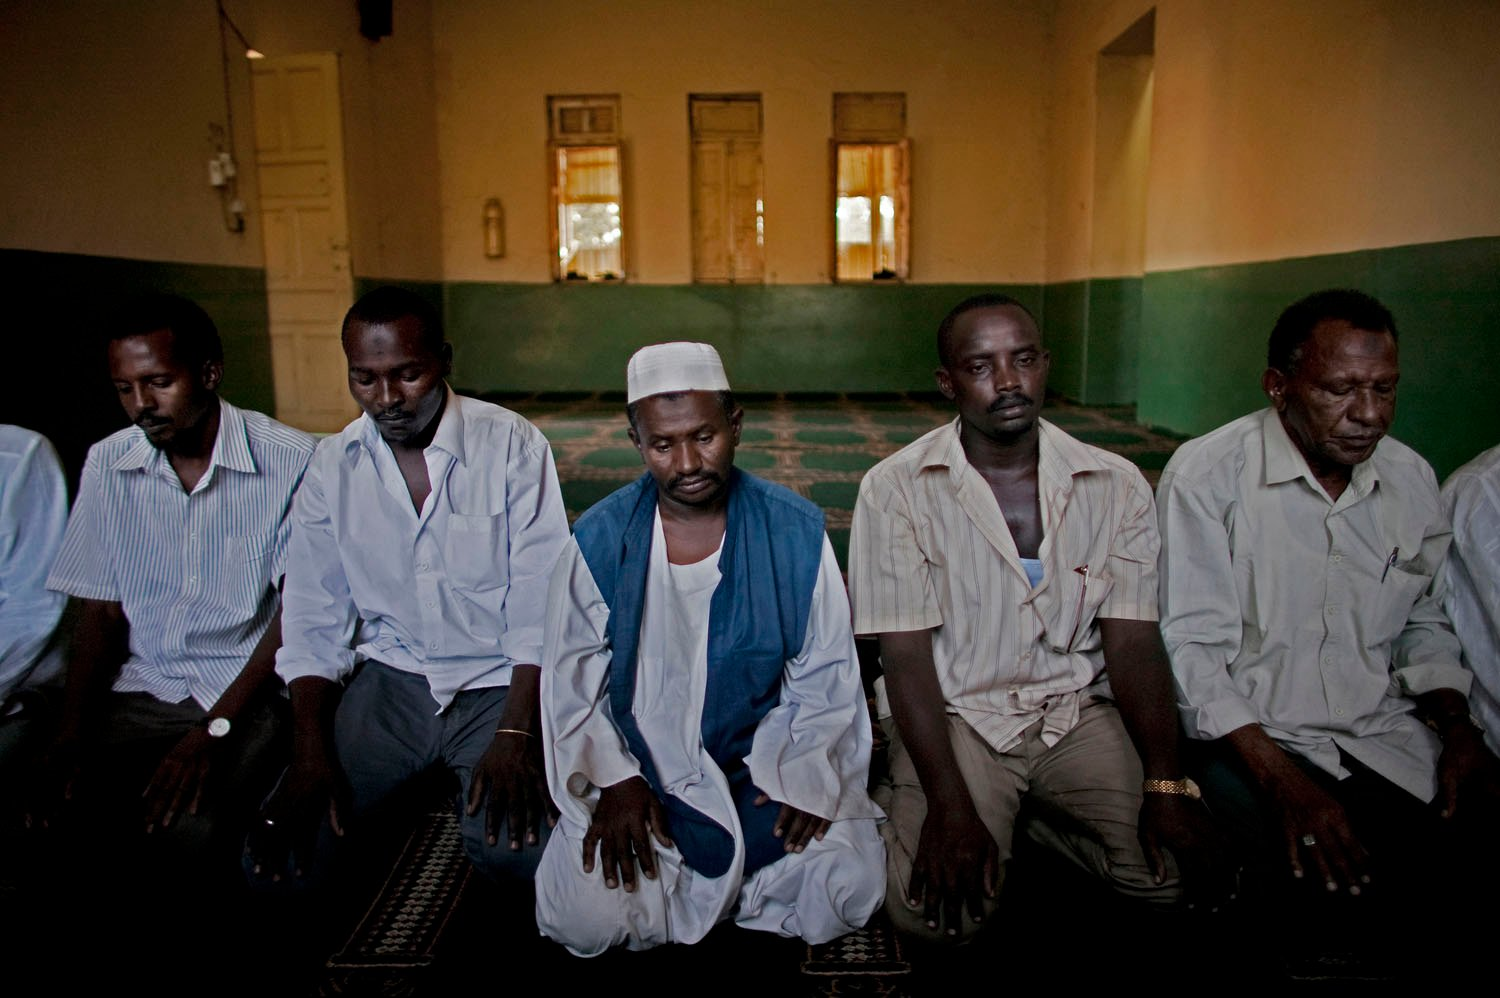 Northern Sudanese traders pray at a mosque in the volatile southern town of Malakal. Thousands of northerners live in the south where they own businesses and facilitate trade with the north. Such traders are the commercial lifeline between southern border towns that are cut off from Juba and therefore dependent on goods from the north. As the south approaches independence, the citizenship and residency rights for long-term northerner traders is in question.